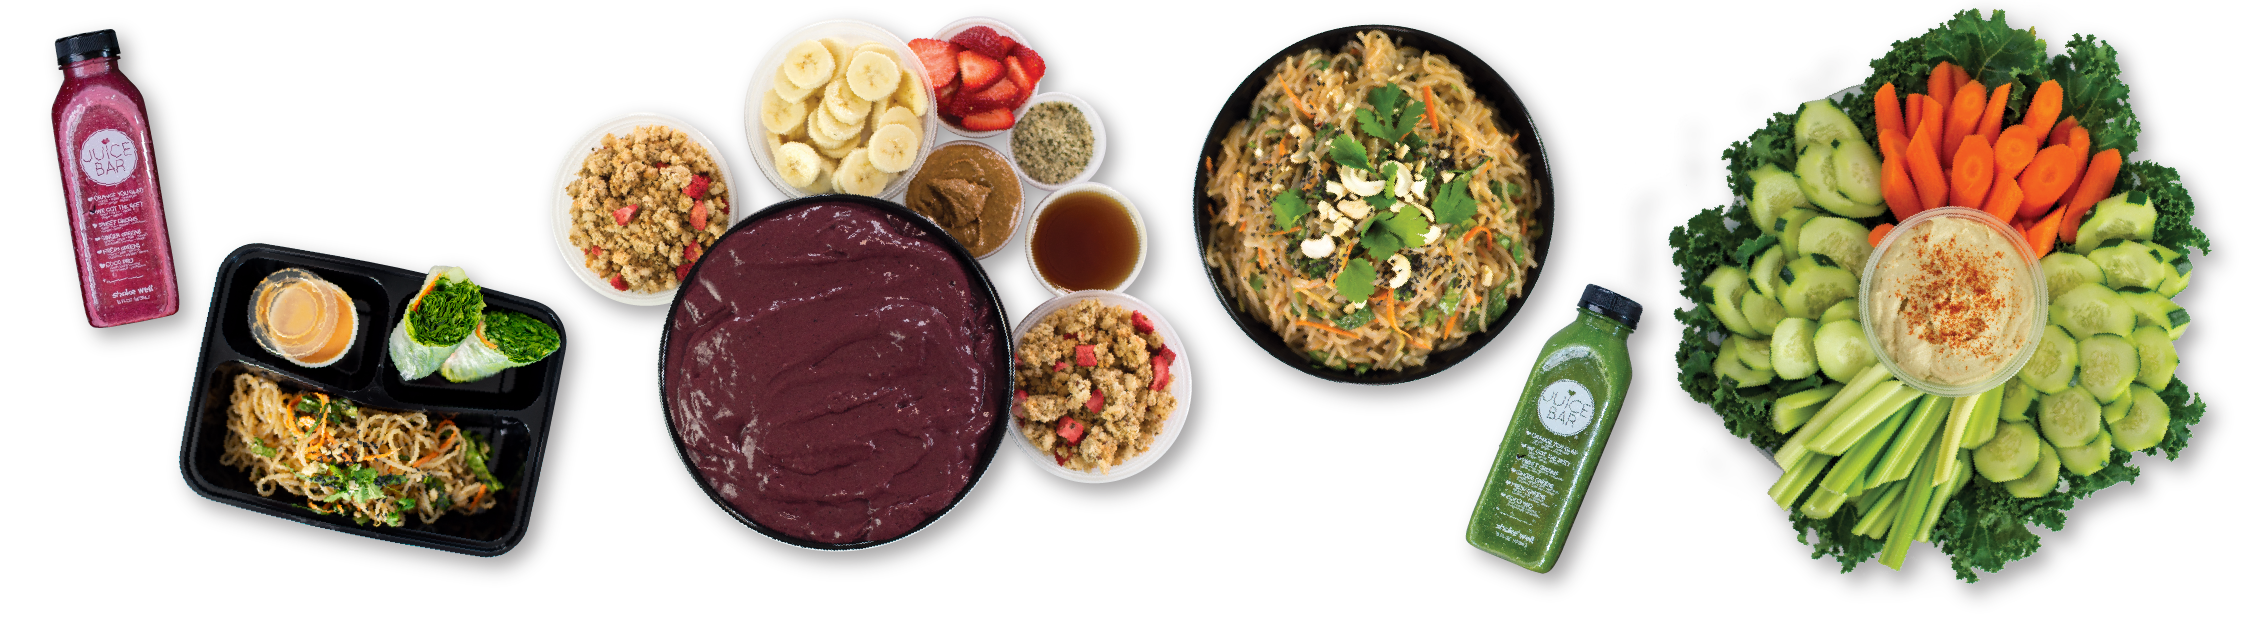 Healthy Catering from I Love Juice Bar